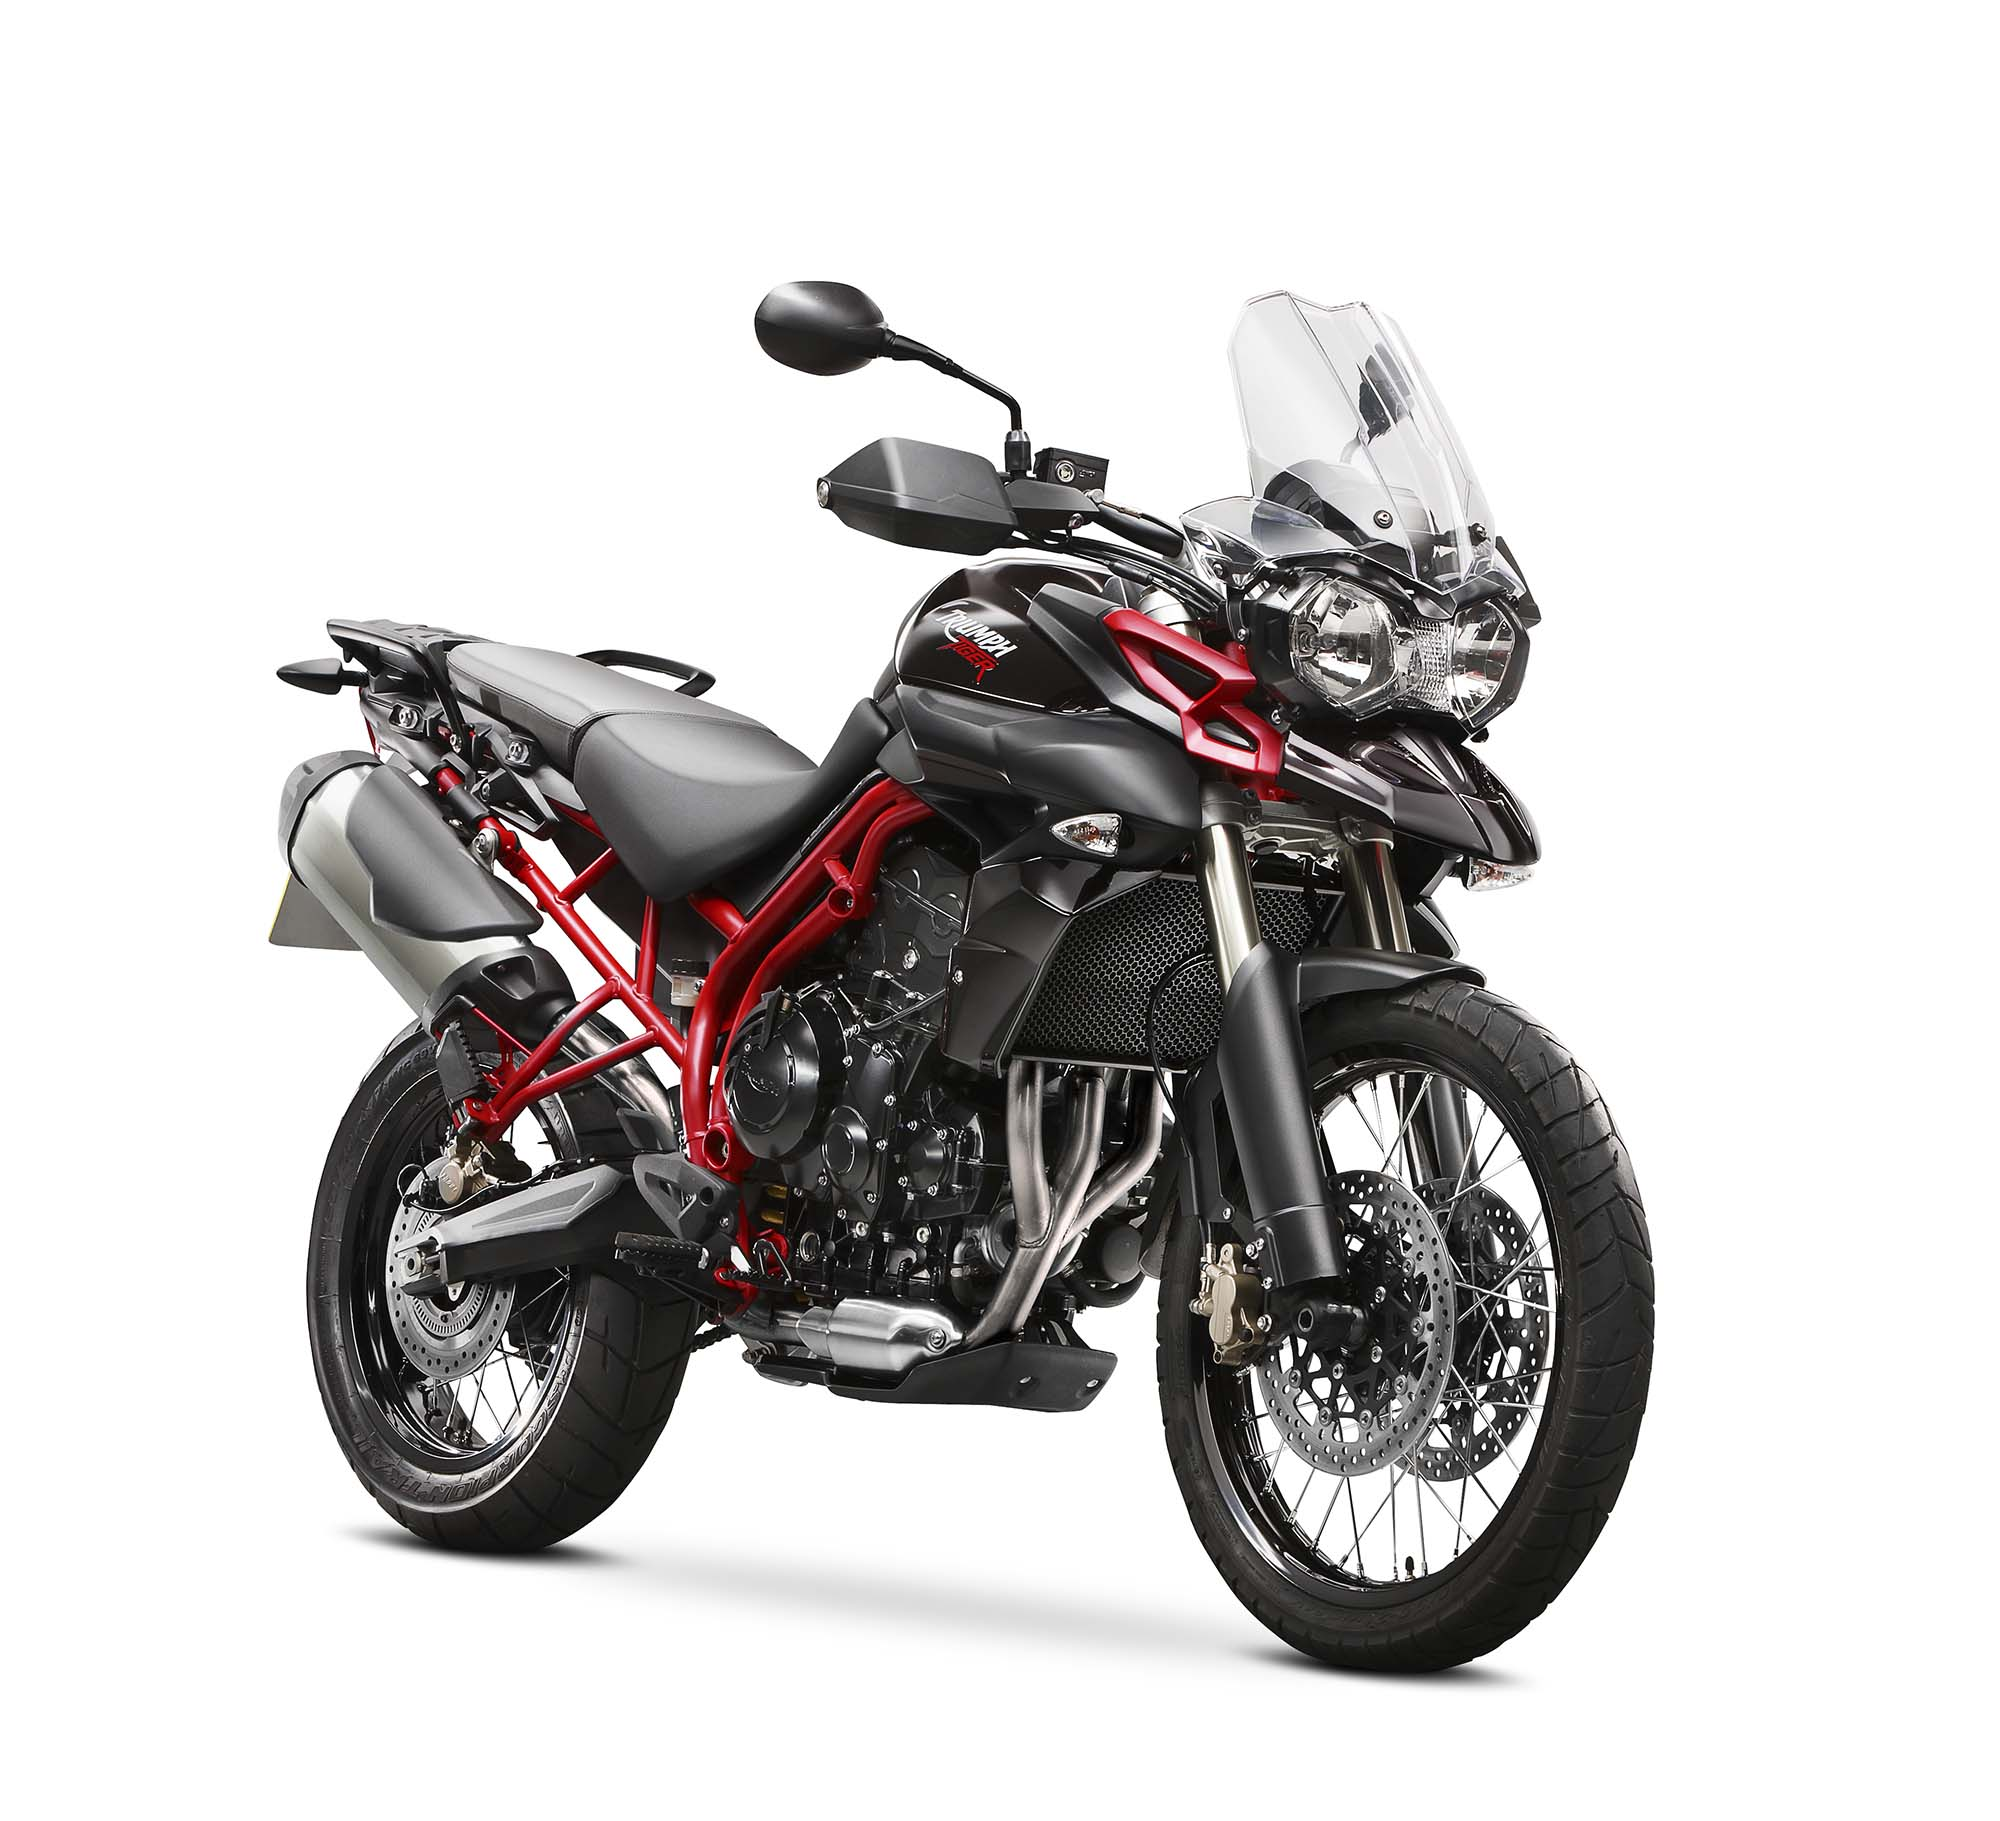 2014 Triumph Tiger 800 XC SE - That's Hot - Asphalt & Rubber